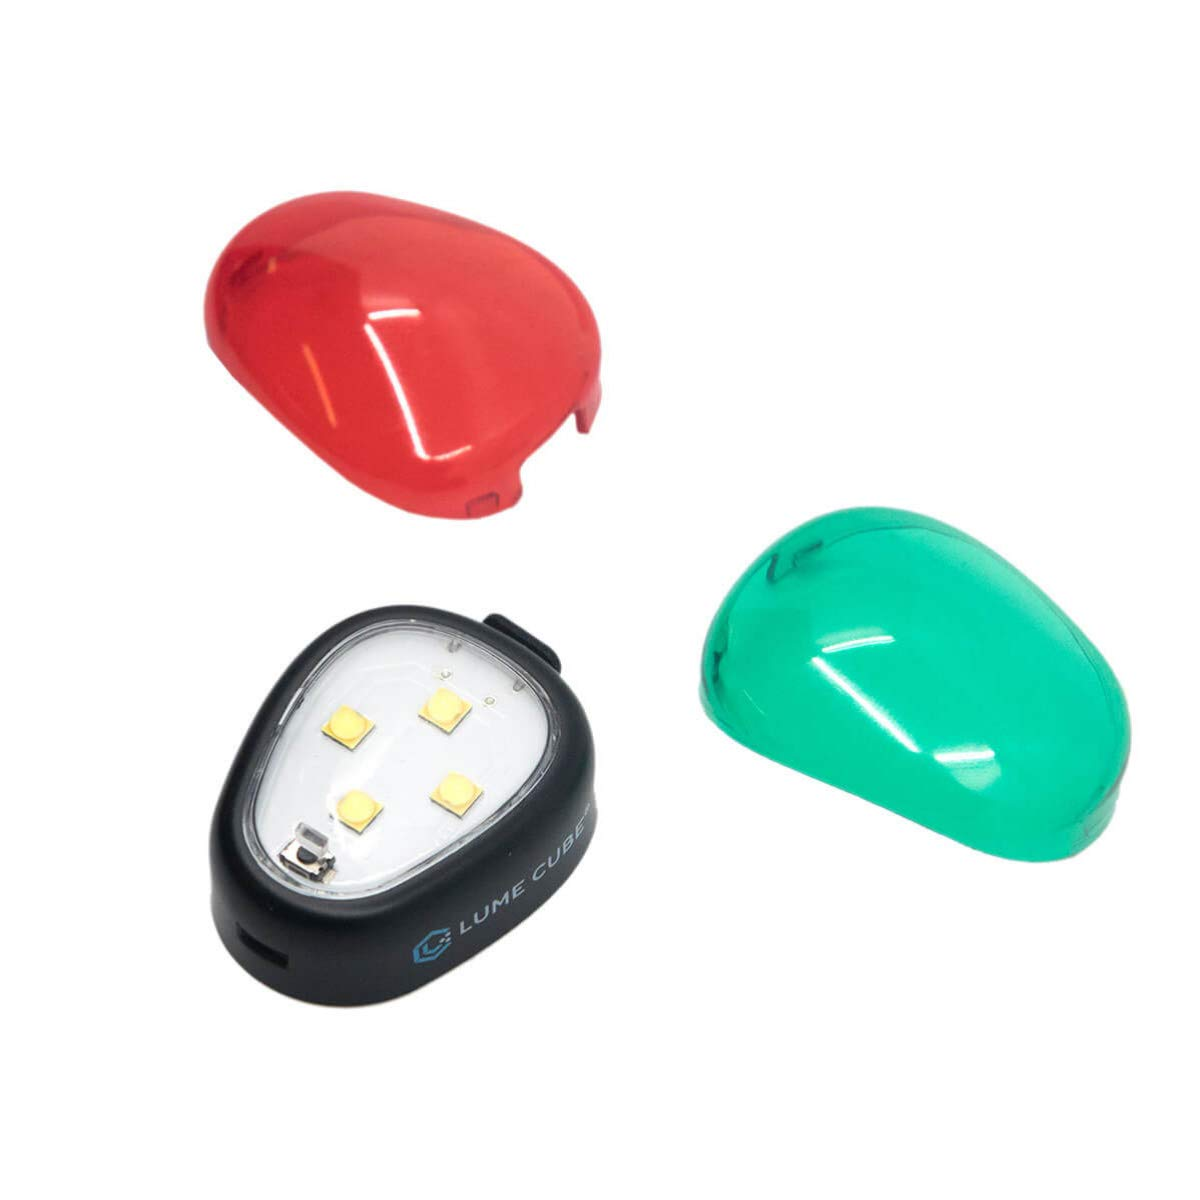 Lume Cube Strobe - Anti-Collision Lighting for Drone (1-Pack) by LUME CUBE